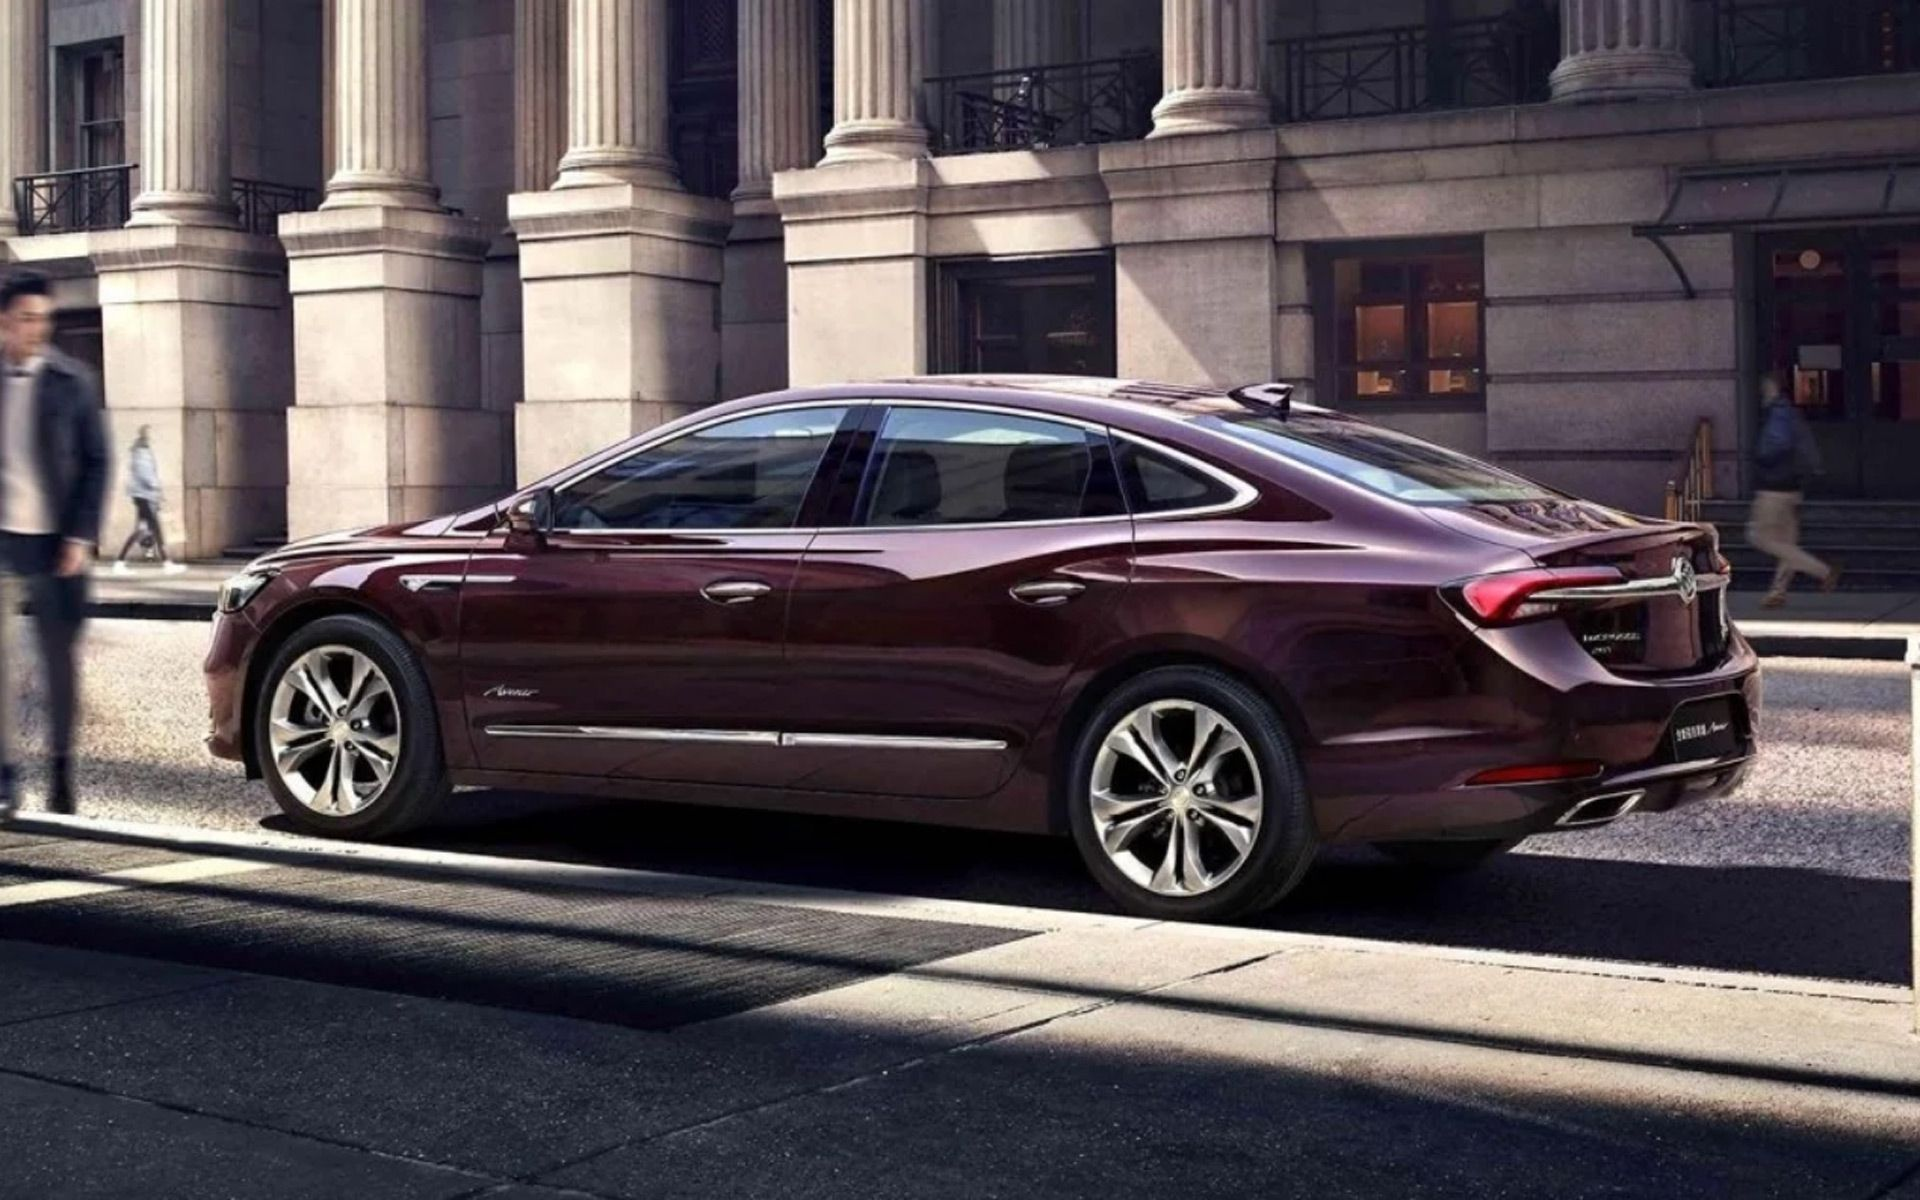 Buick Unveils The 2020 Lacrosse For China At 2019 Shanghai Auto Show While Gm Had Announced To Kill The Model In The Us In 2020 Buick Lacrosse Buick Sedan Buick